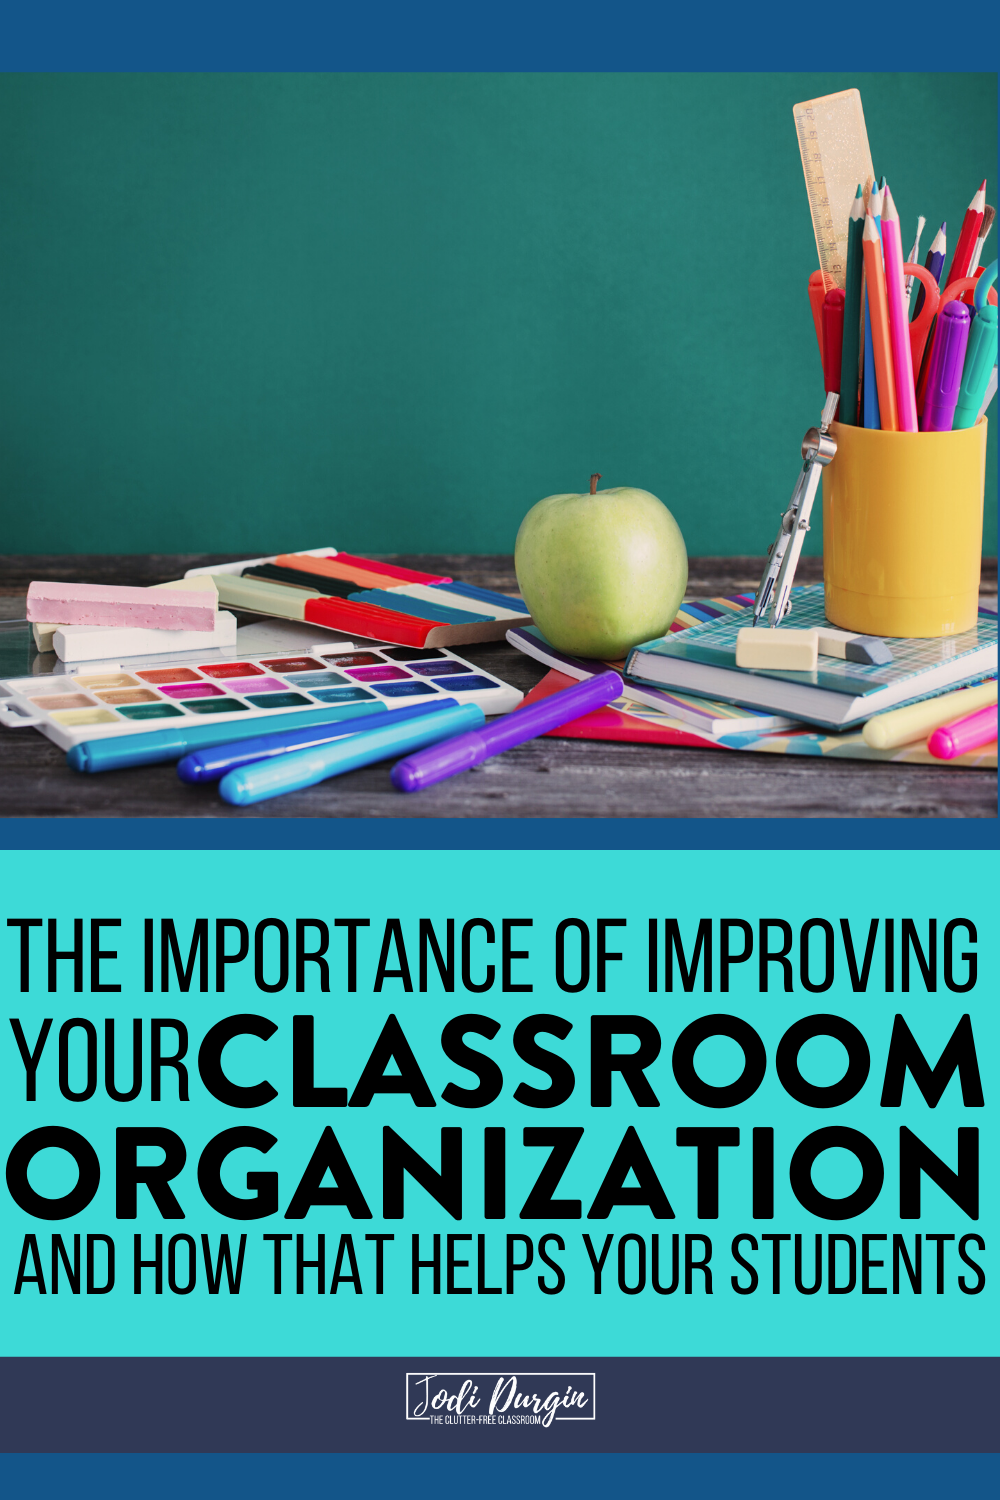 Learn about how important it is to improve your classroom organization and how it impacts your elementary students' learning. This Clutter-Free Classroom might be the motivation or sign you need to begin organizing your classroom. Read it now! #classroomorganization #organizedteacher #elementaryclassroom